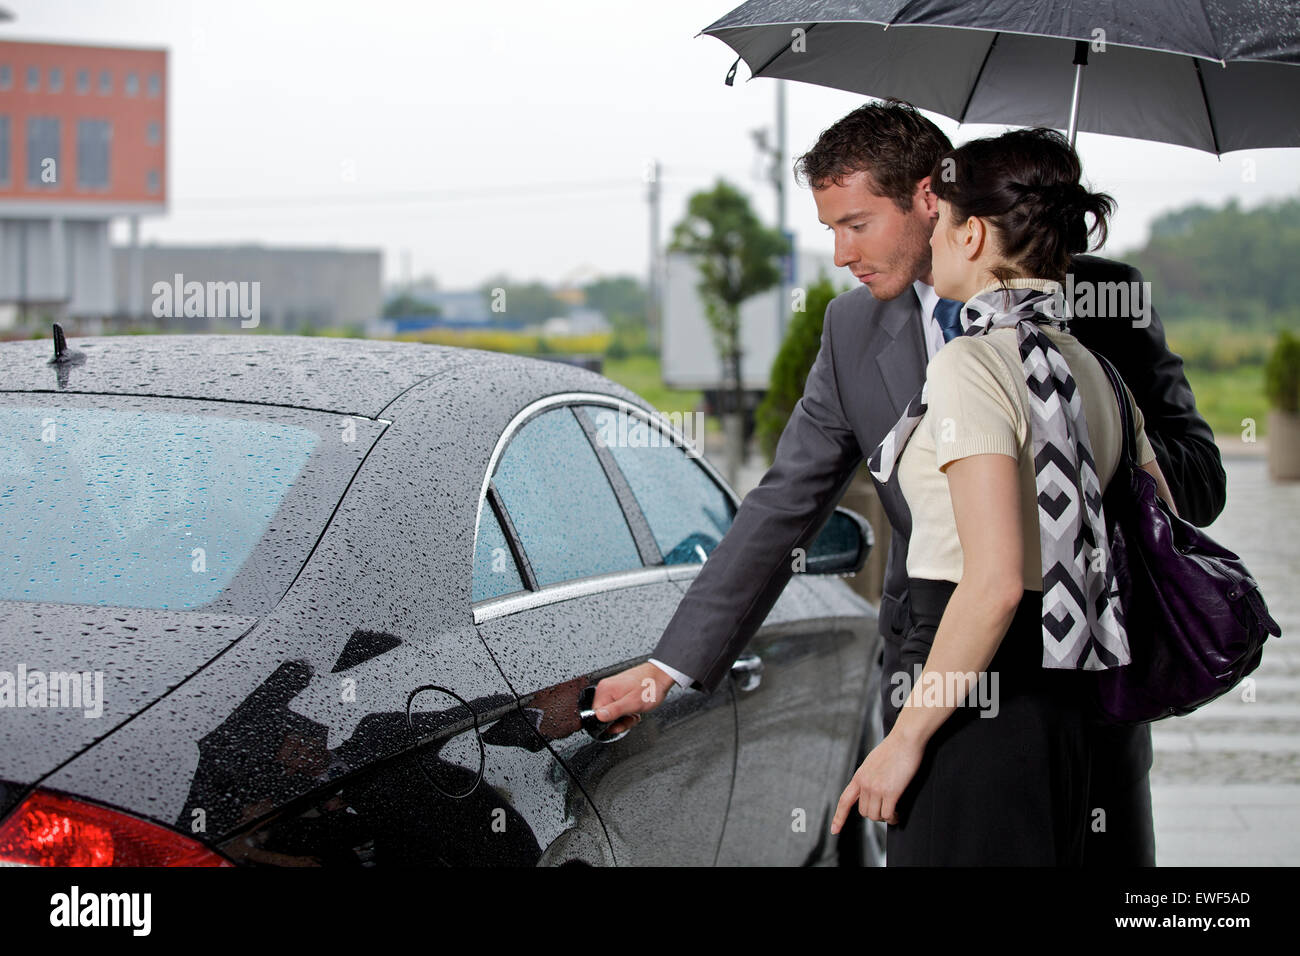 Young man opening door of car for woman - Stock Image